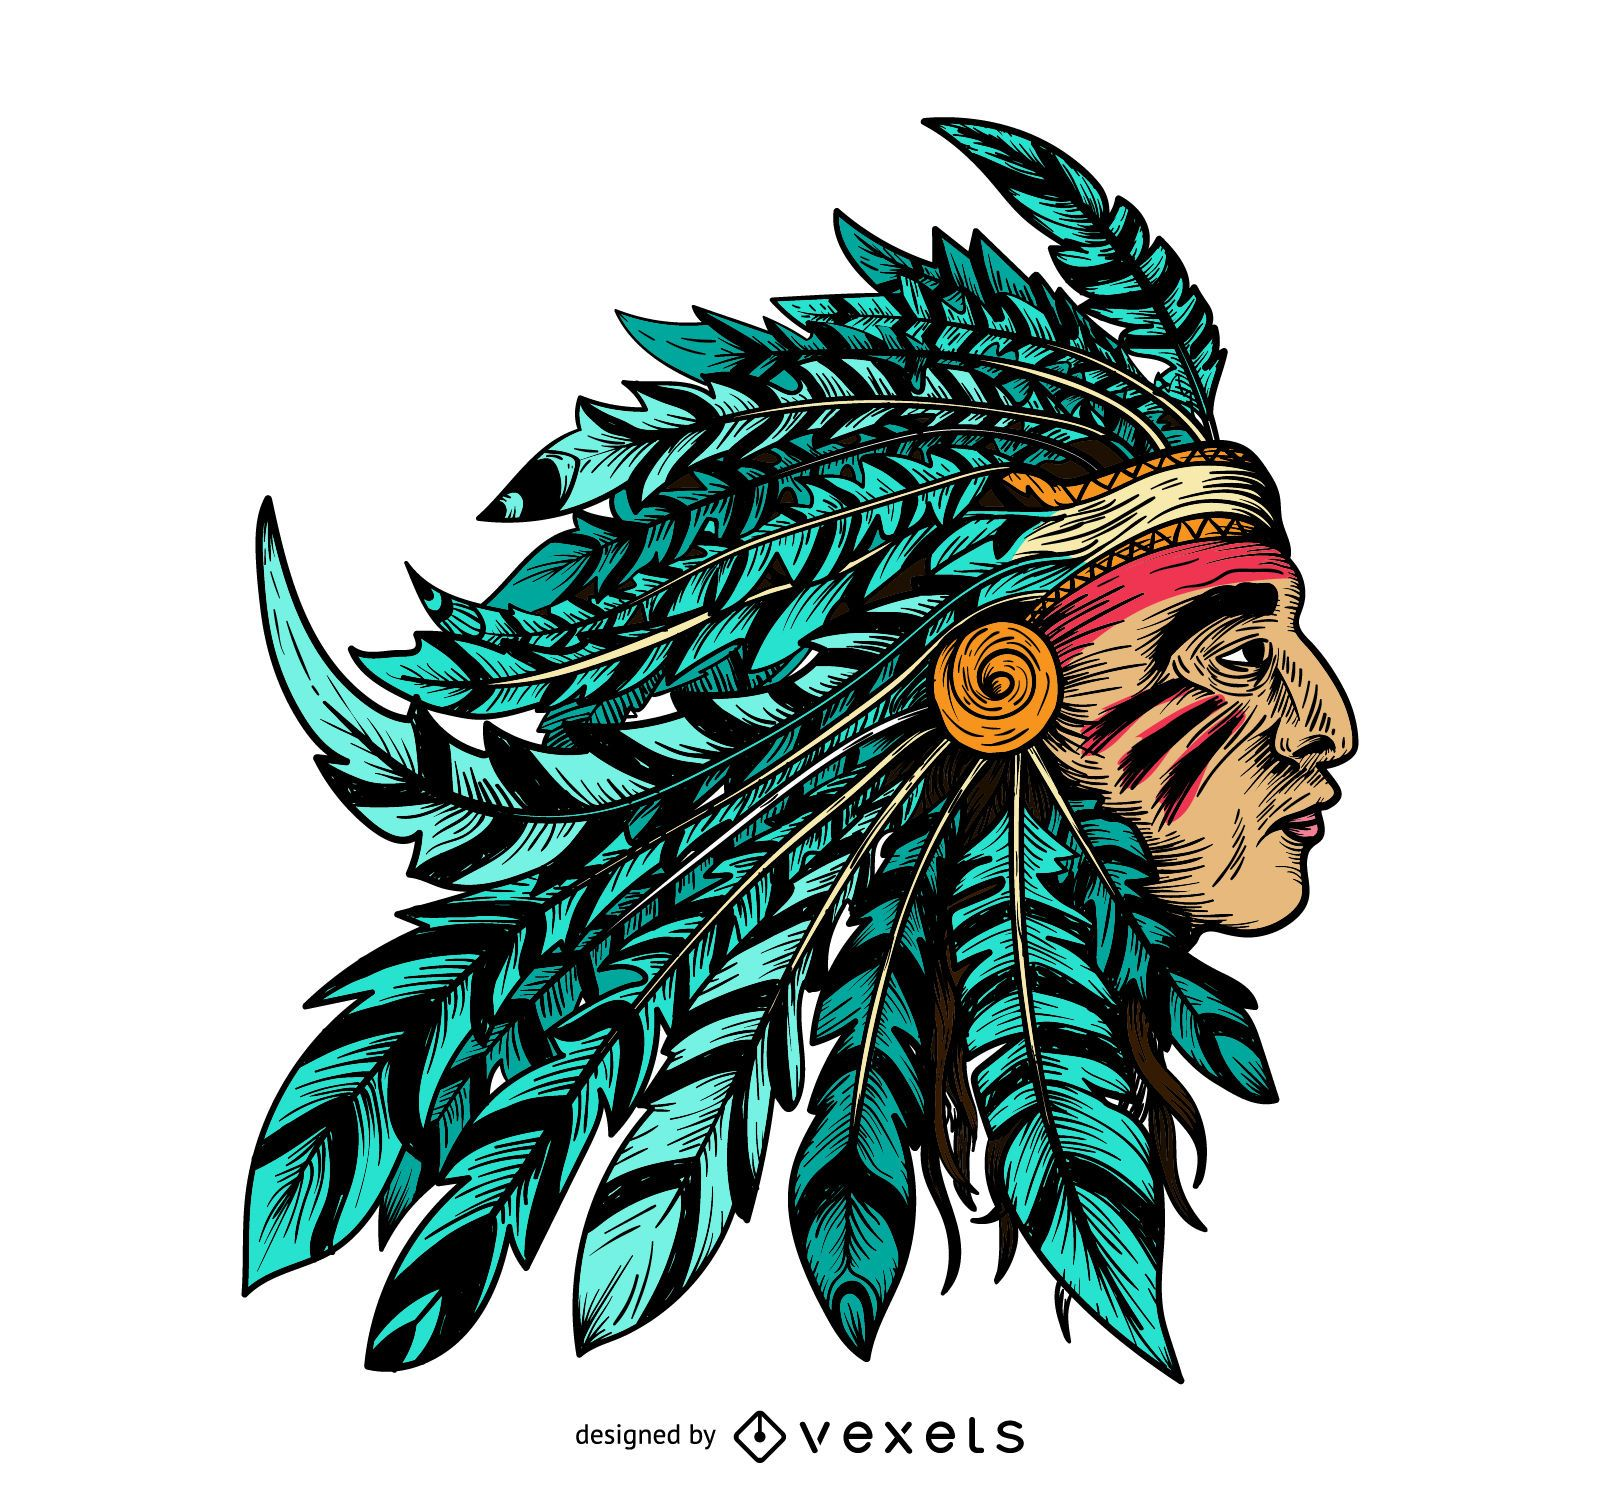 native american chief illustration vector download